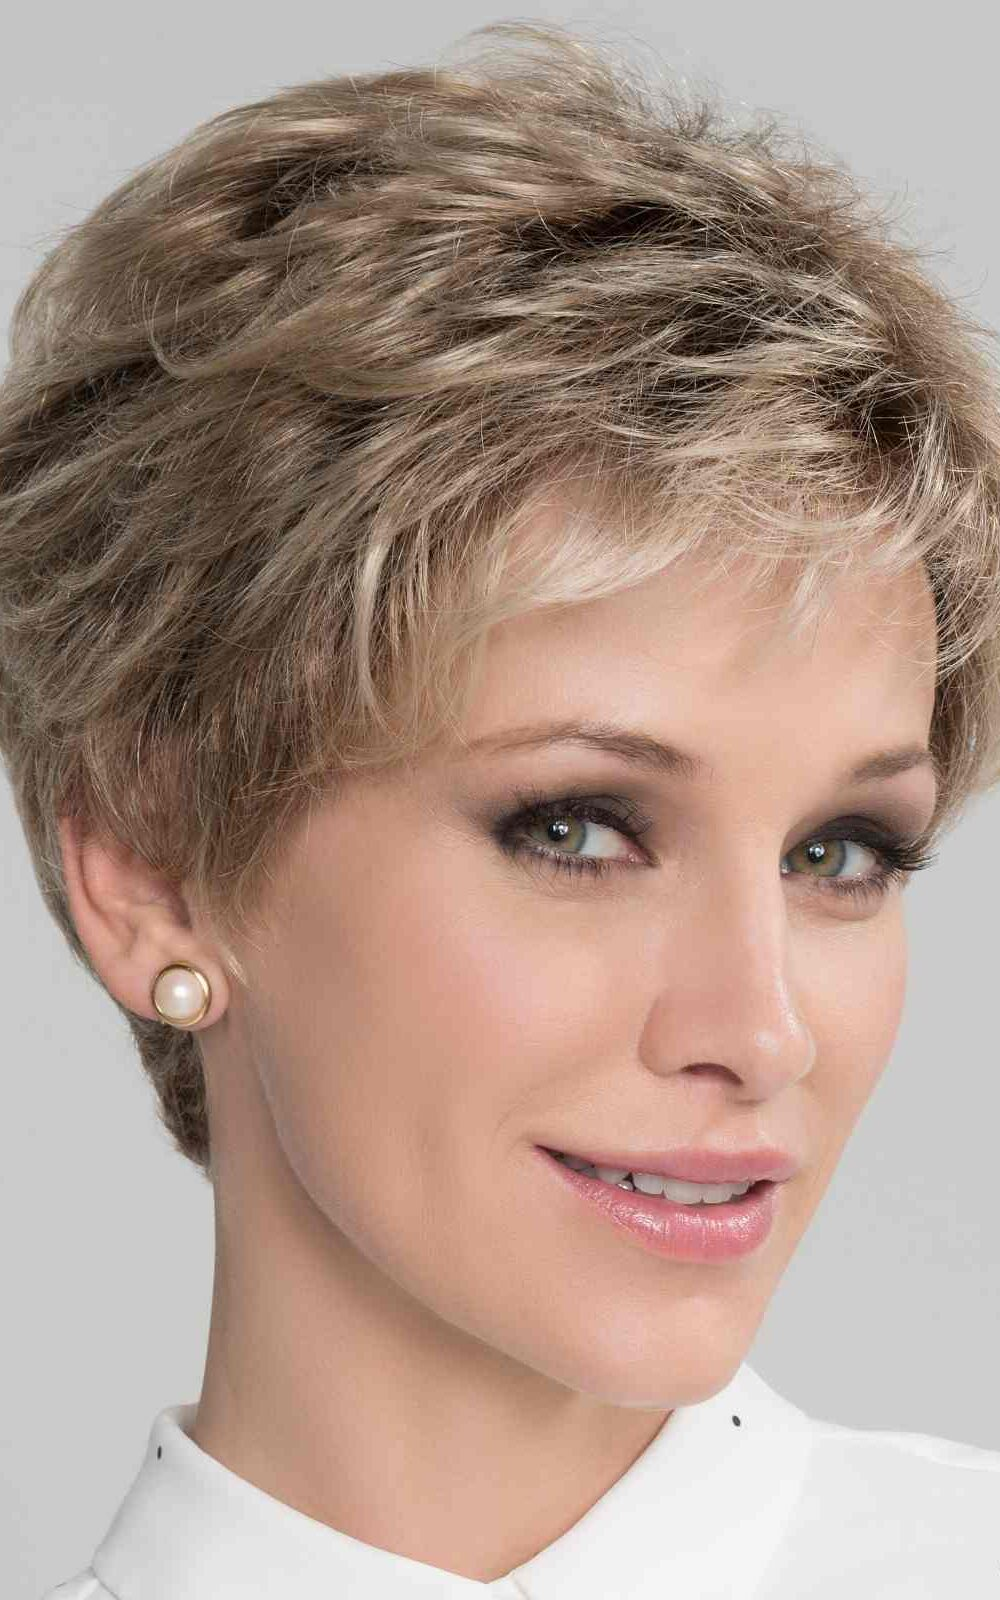 Alba Comfort Wig | Champagne Rooted | 100% Hand Tied - Lace front | Elly-K.com.au